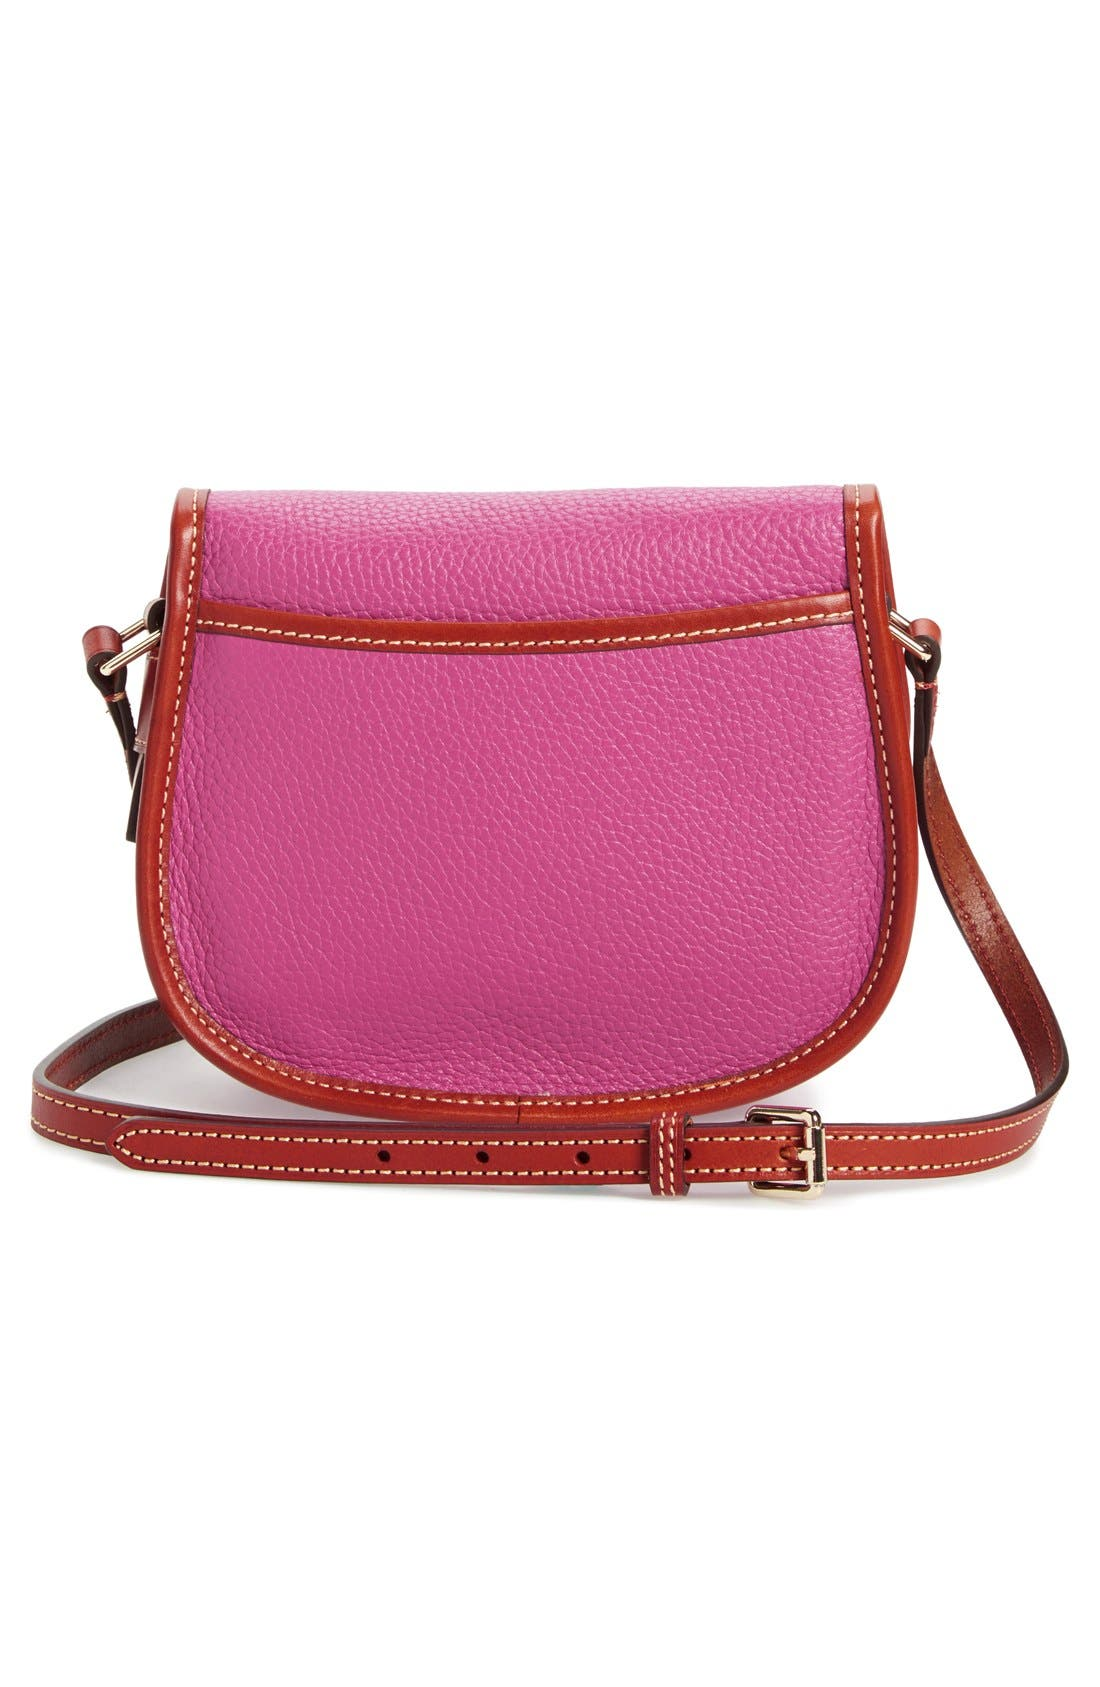 Alternate Image 3  - Dooney & Bourke 'Hallie' Leather Crossbody Bag